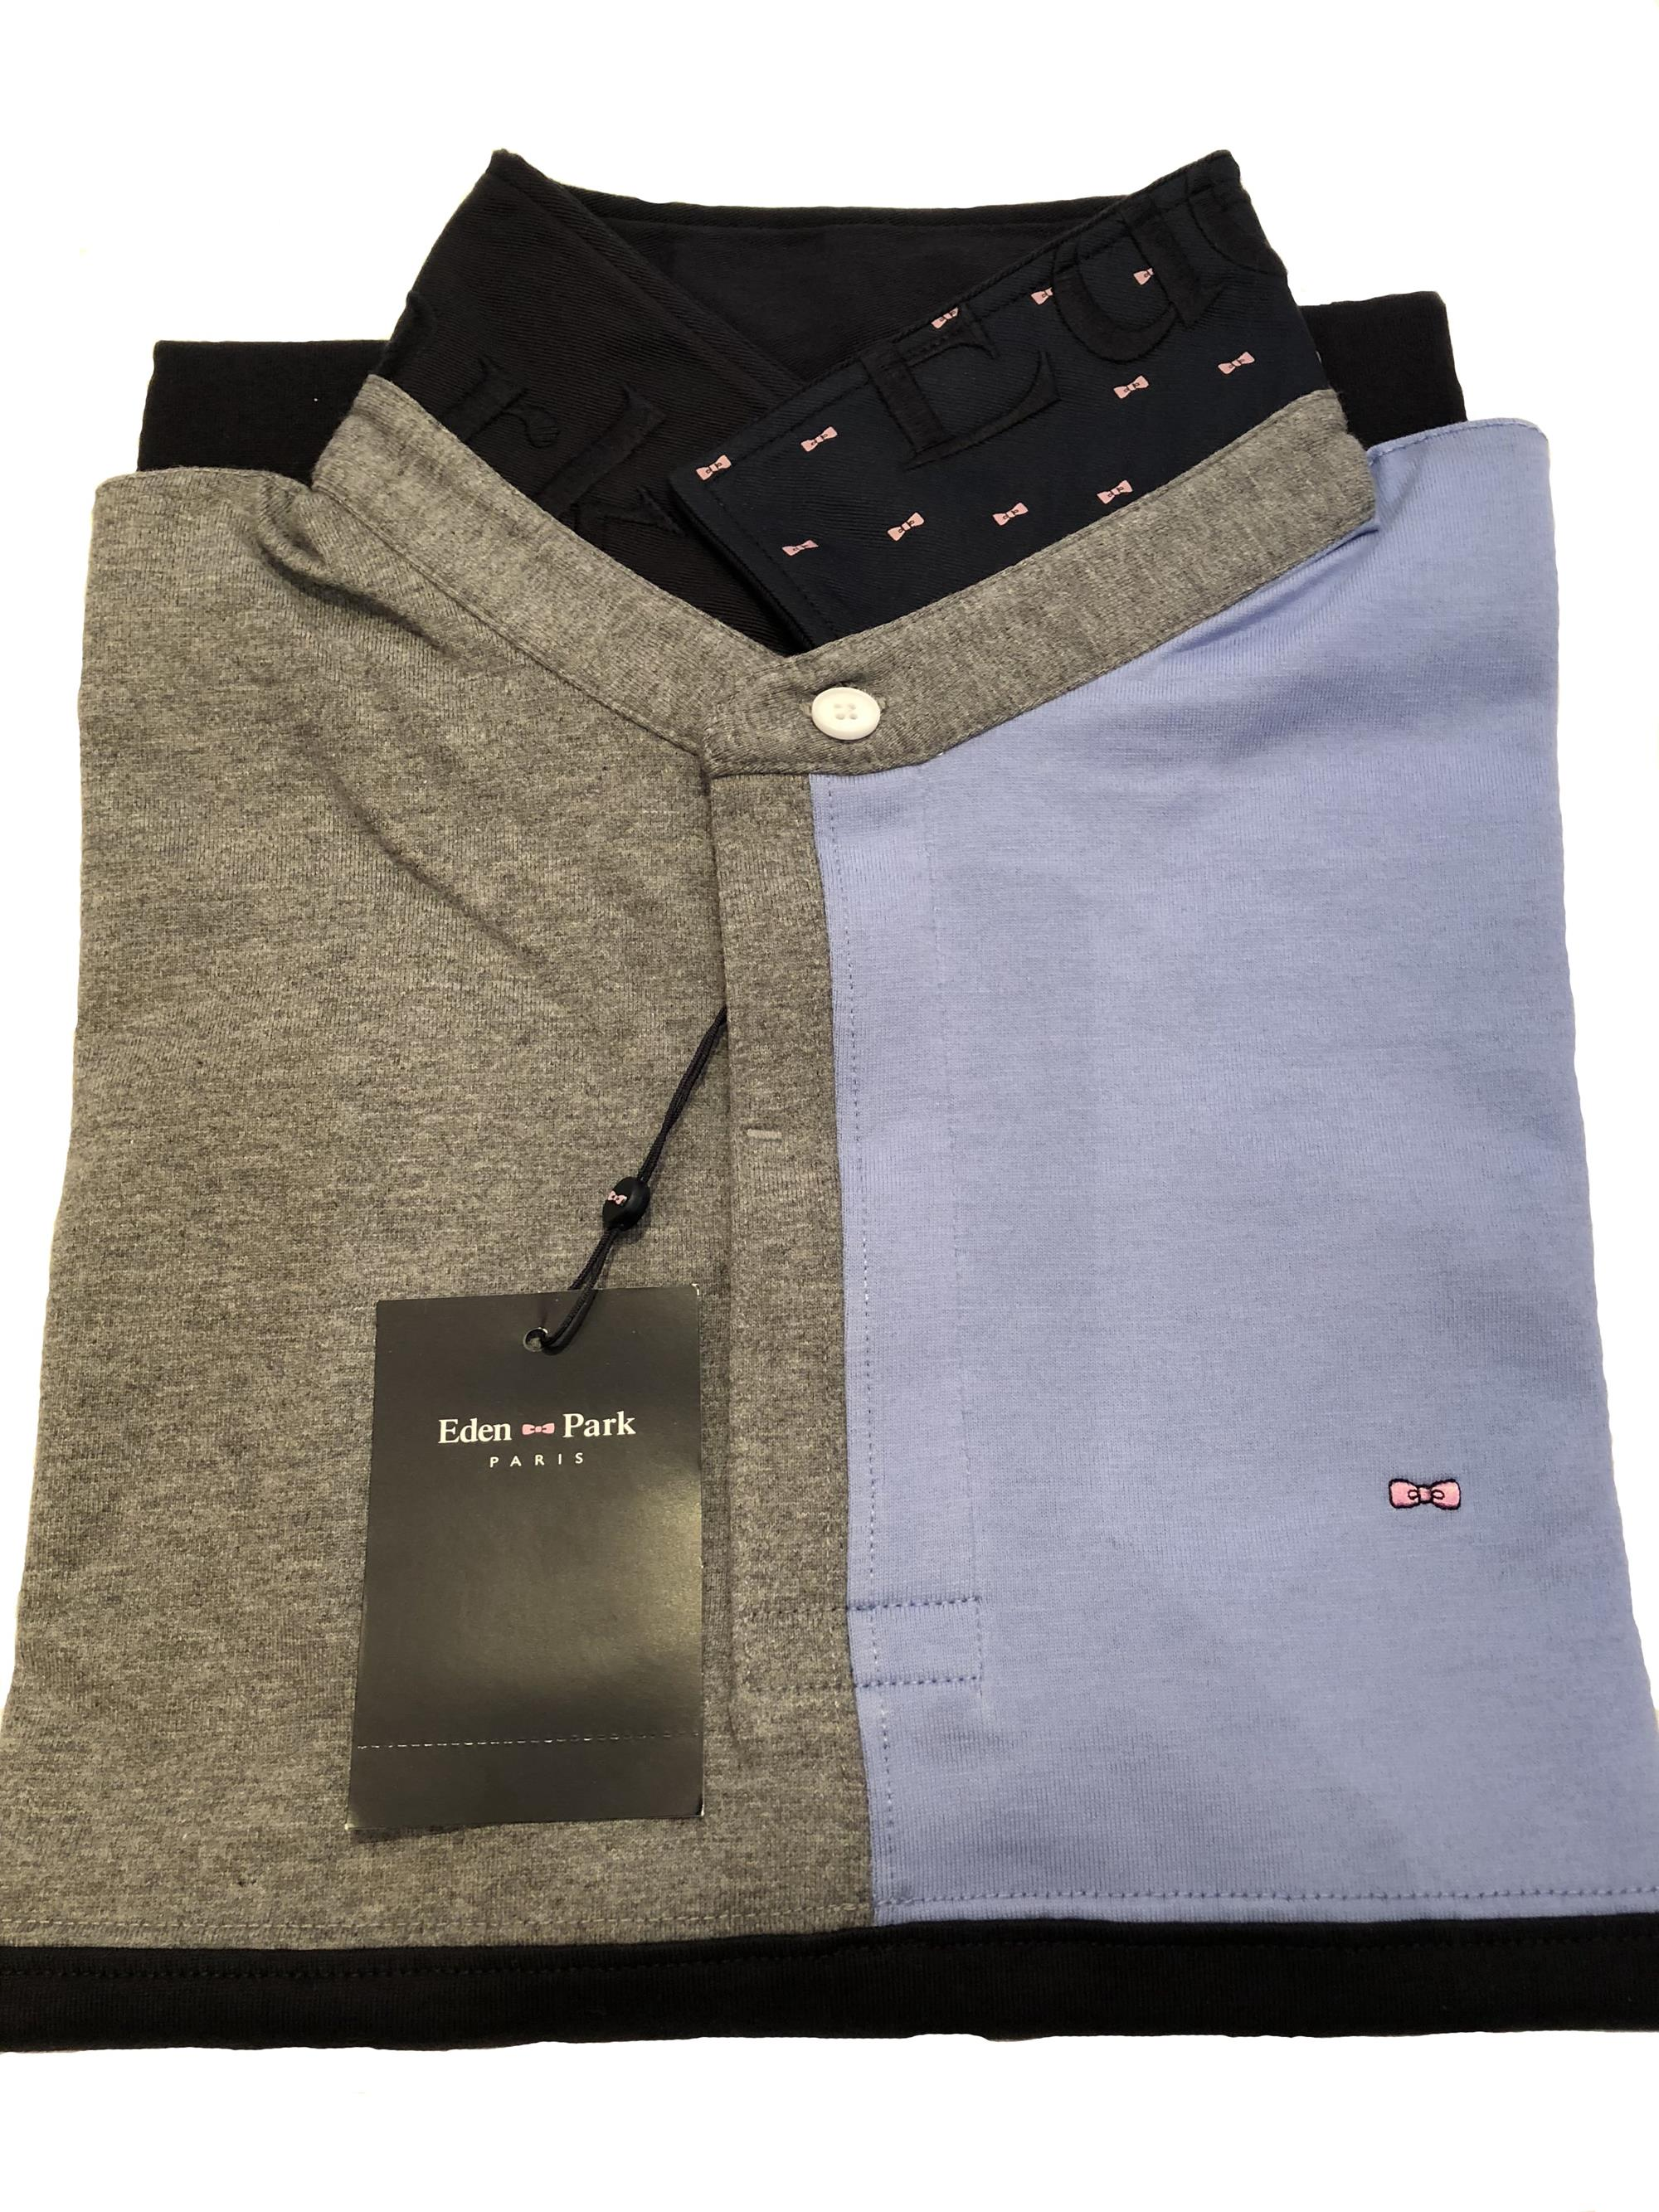 panel jersey style polo (navy/grey/sky)